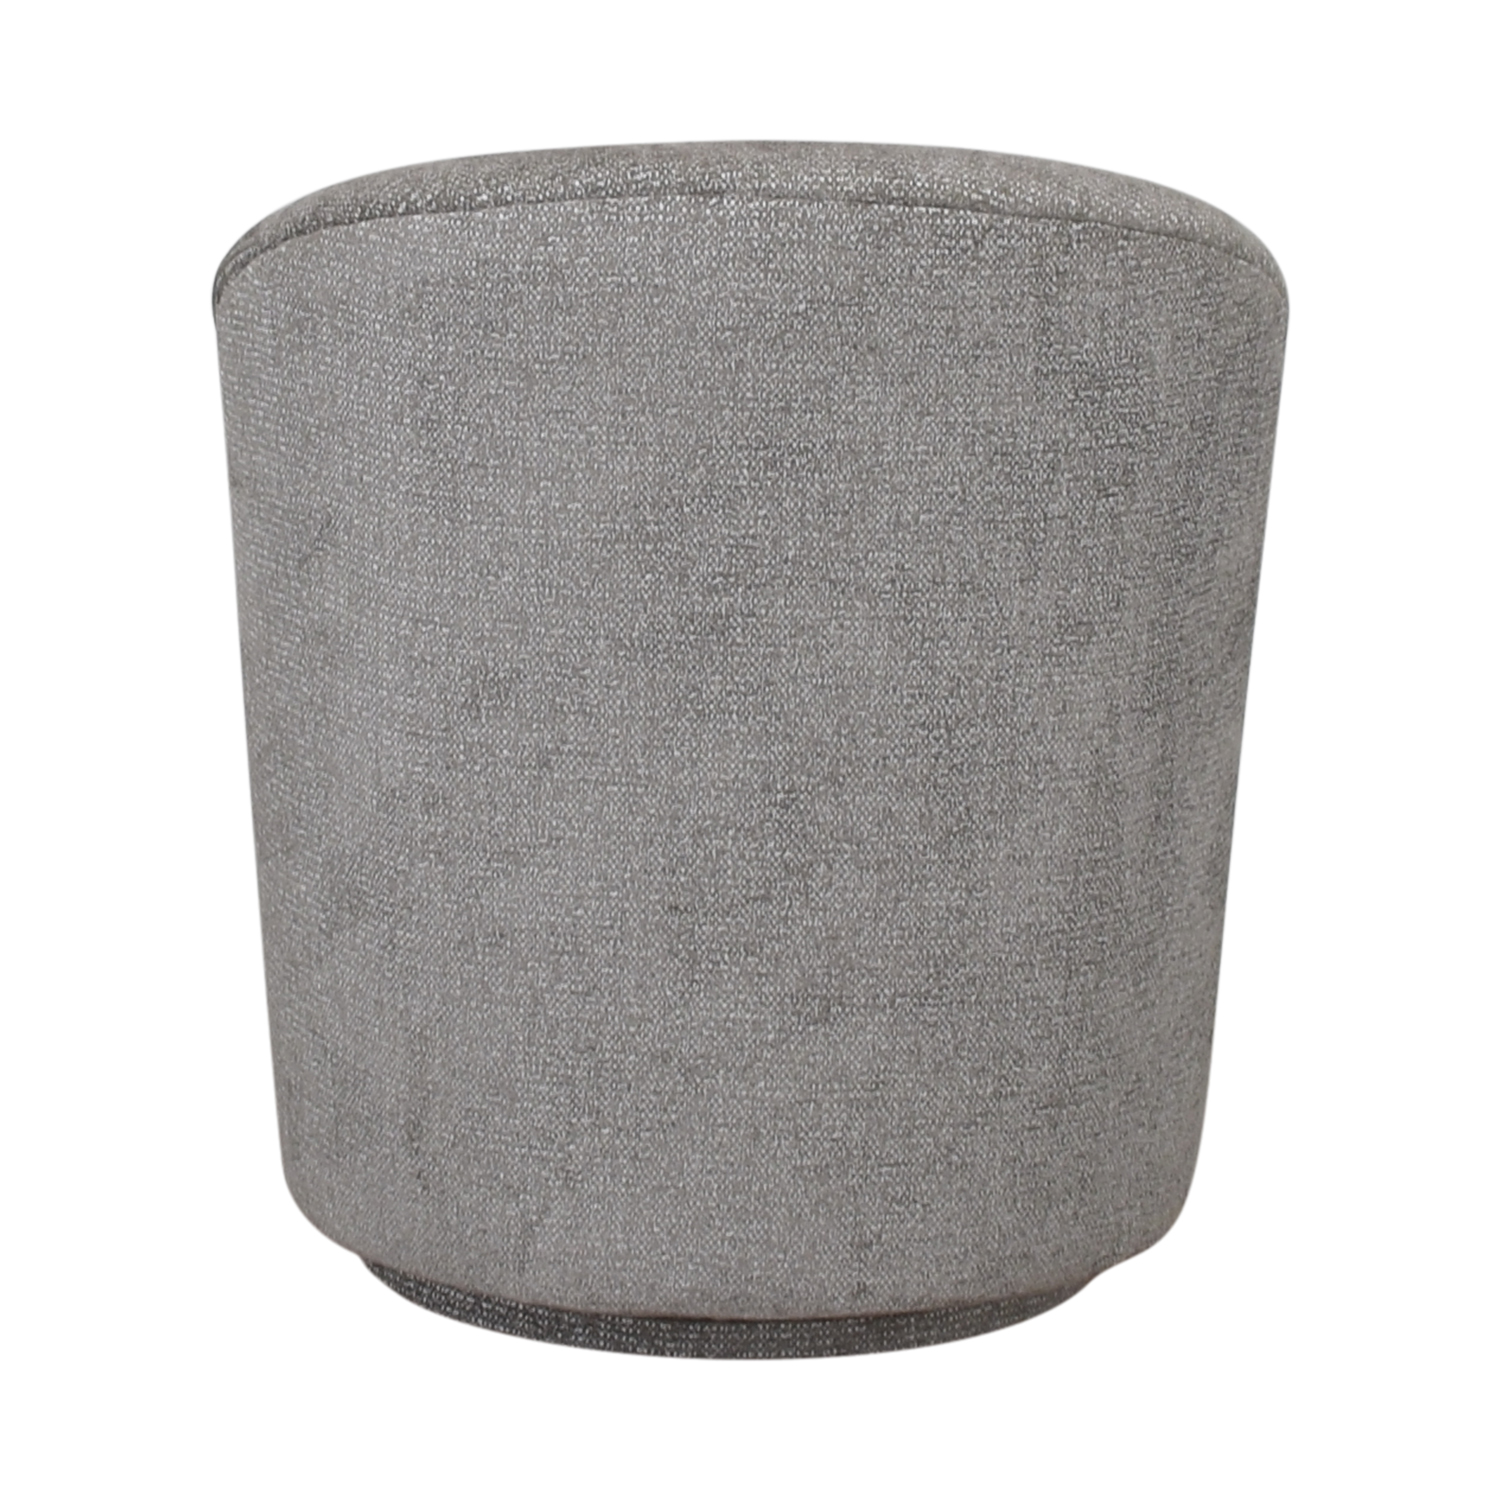 Furniture Masters Furniture Masters Gray Upholstered  Accent Chair nj